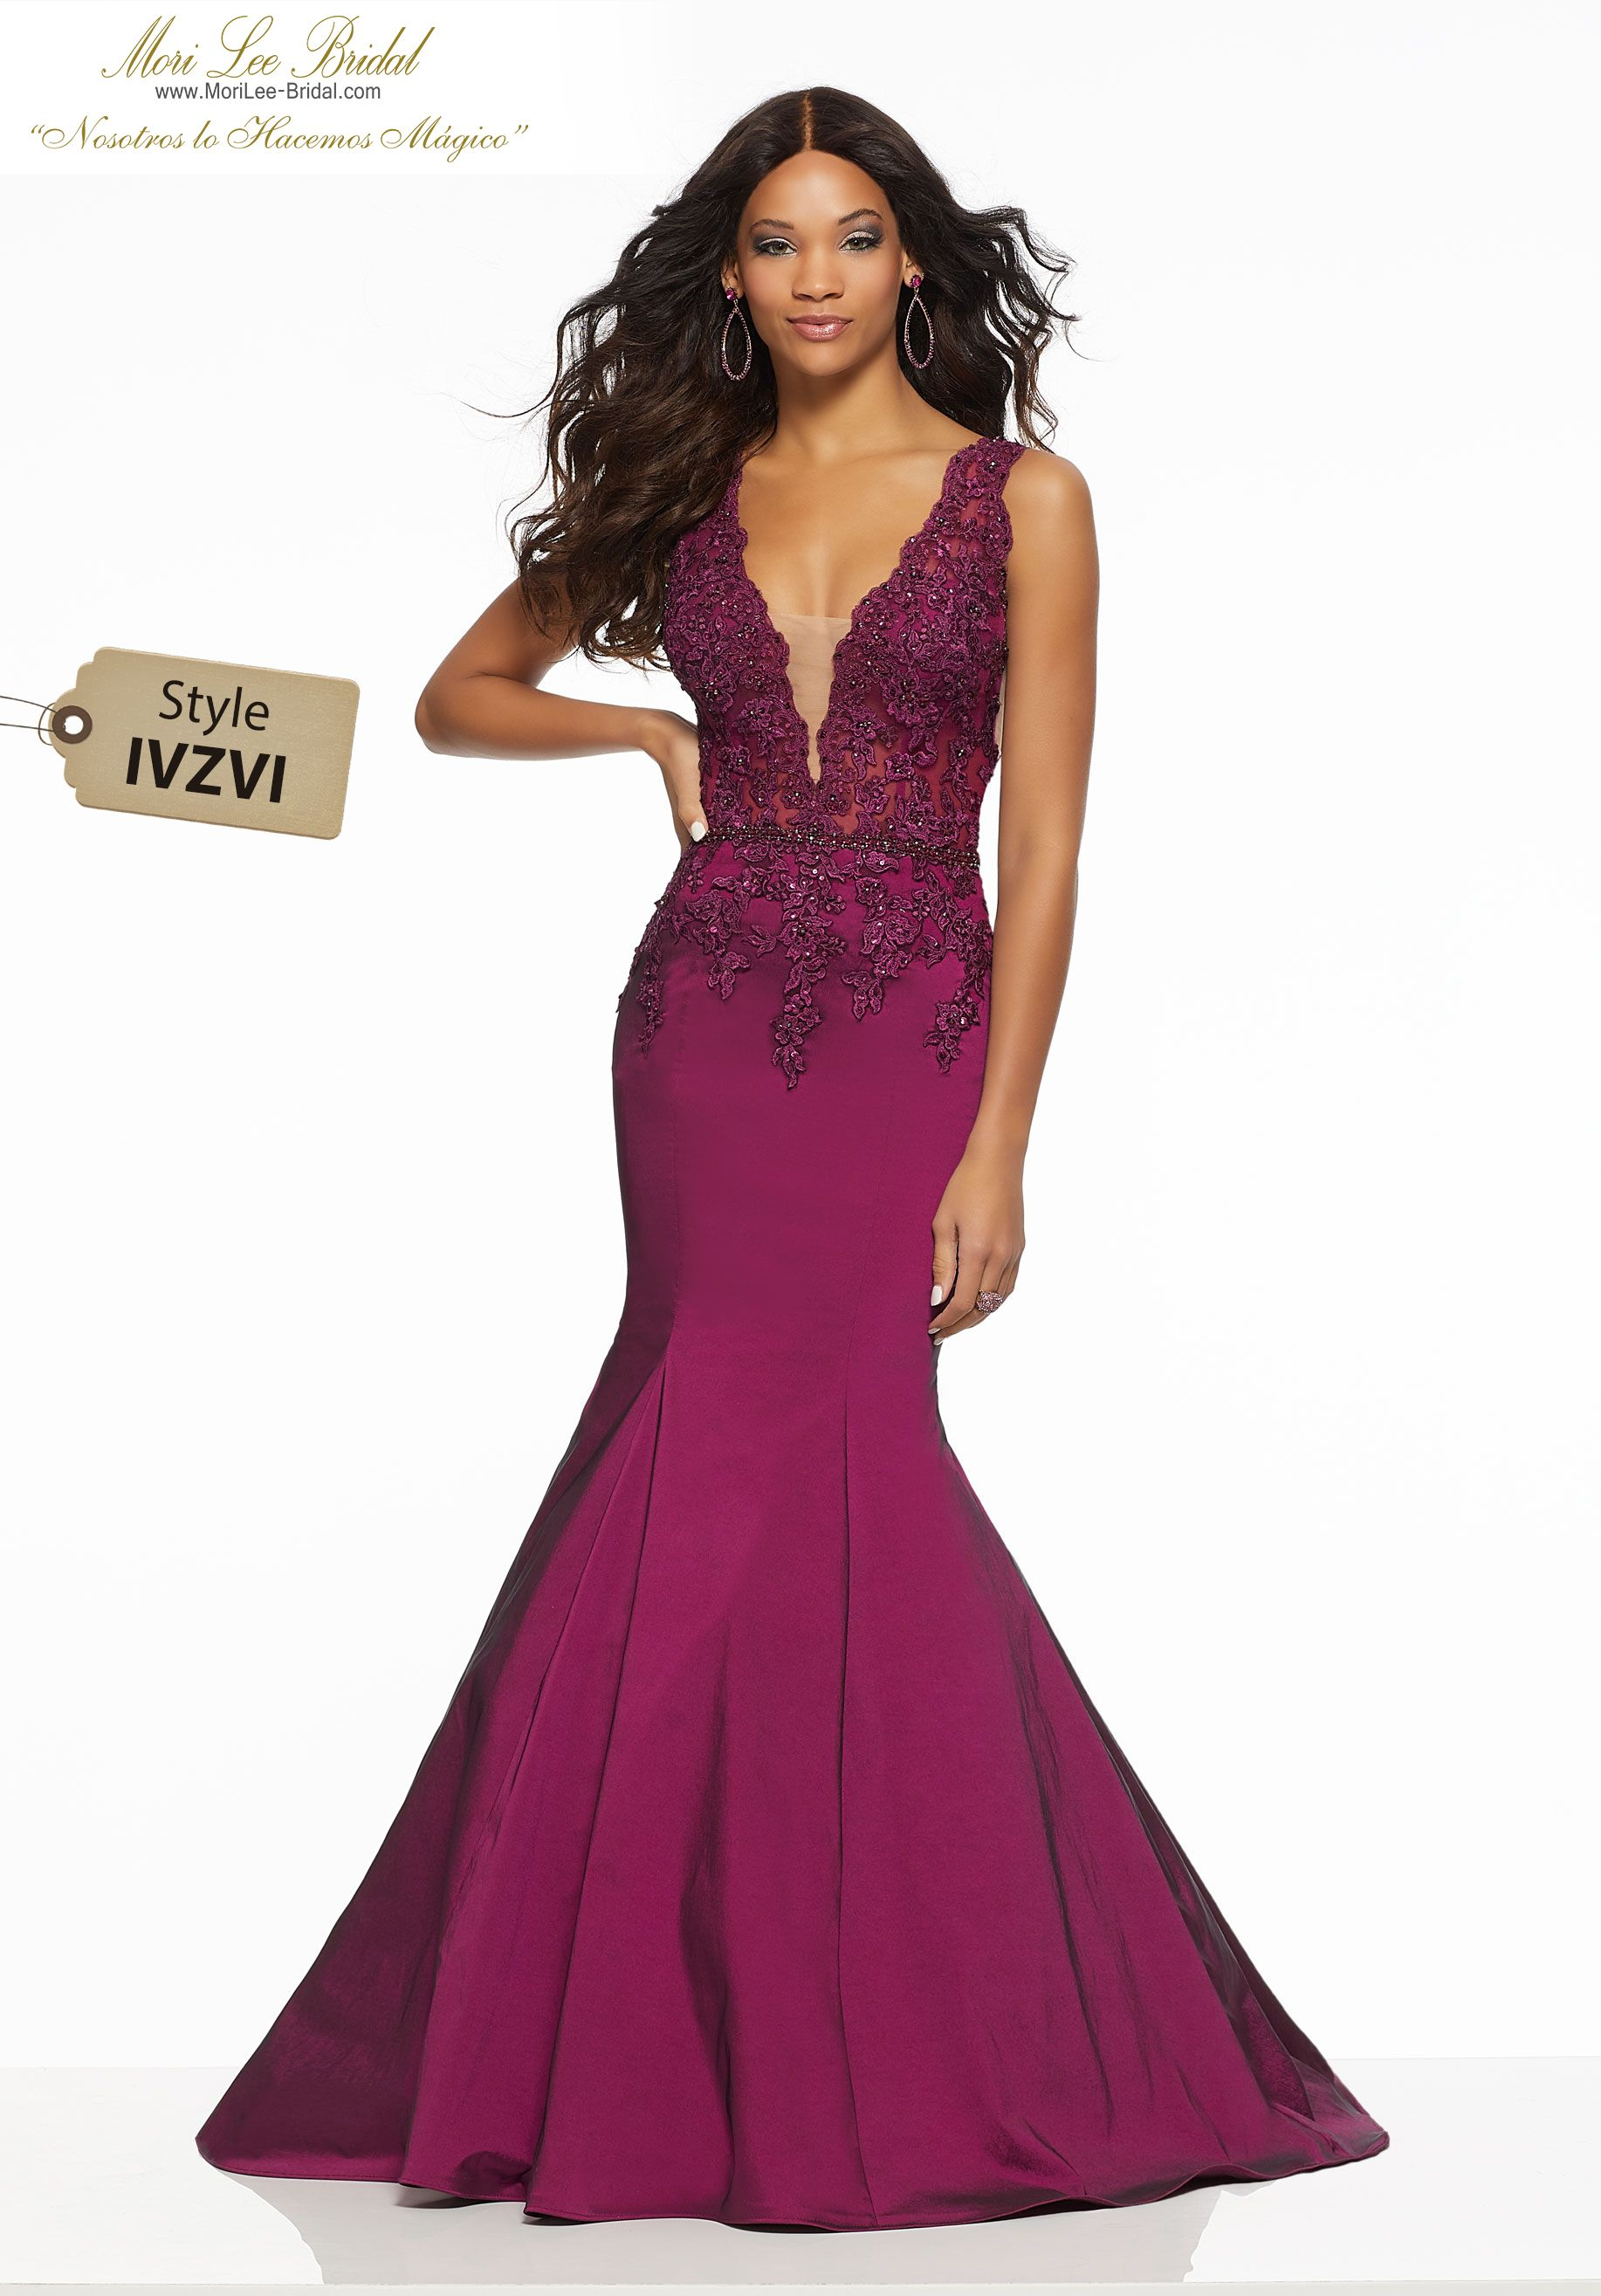 d56b42813b7 Beaded Lace Appliqués and Waistband on Stretch Taffeta Fitted Stretch  Taffeta Mermaid